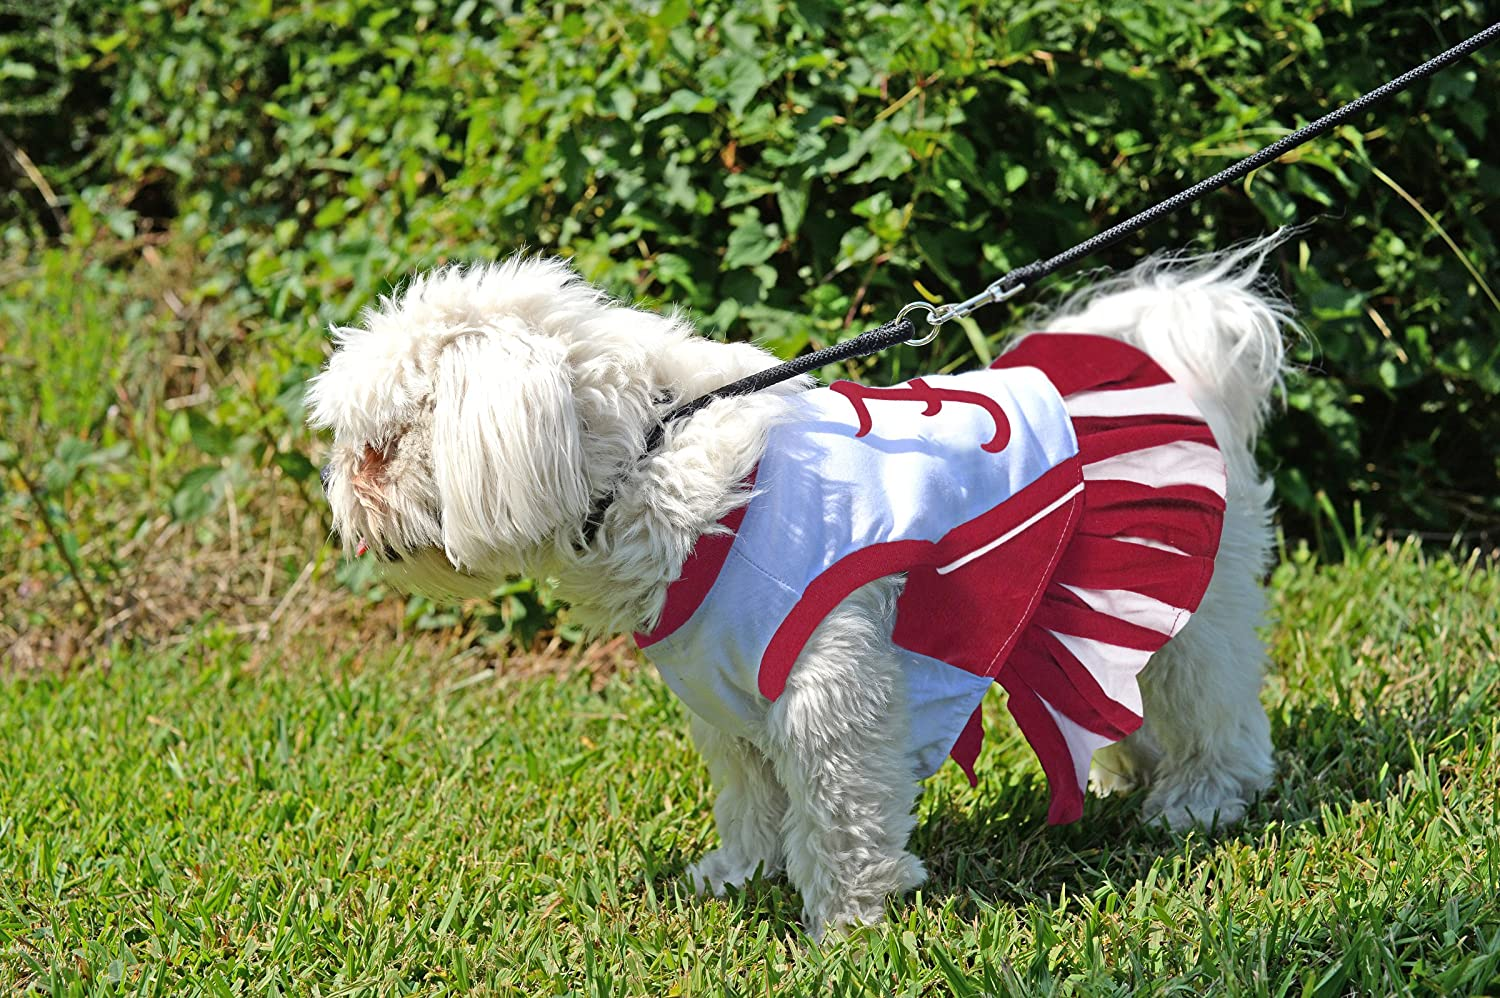 Amazon.com : Pets First NCAA Collegiate Alabama Crimson Tide Dog Cheerleader Dress : Pet Supplies